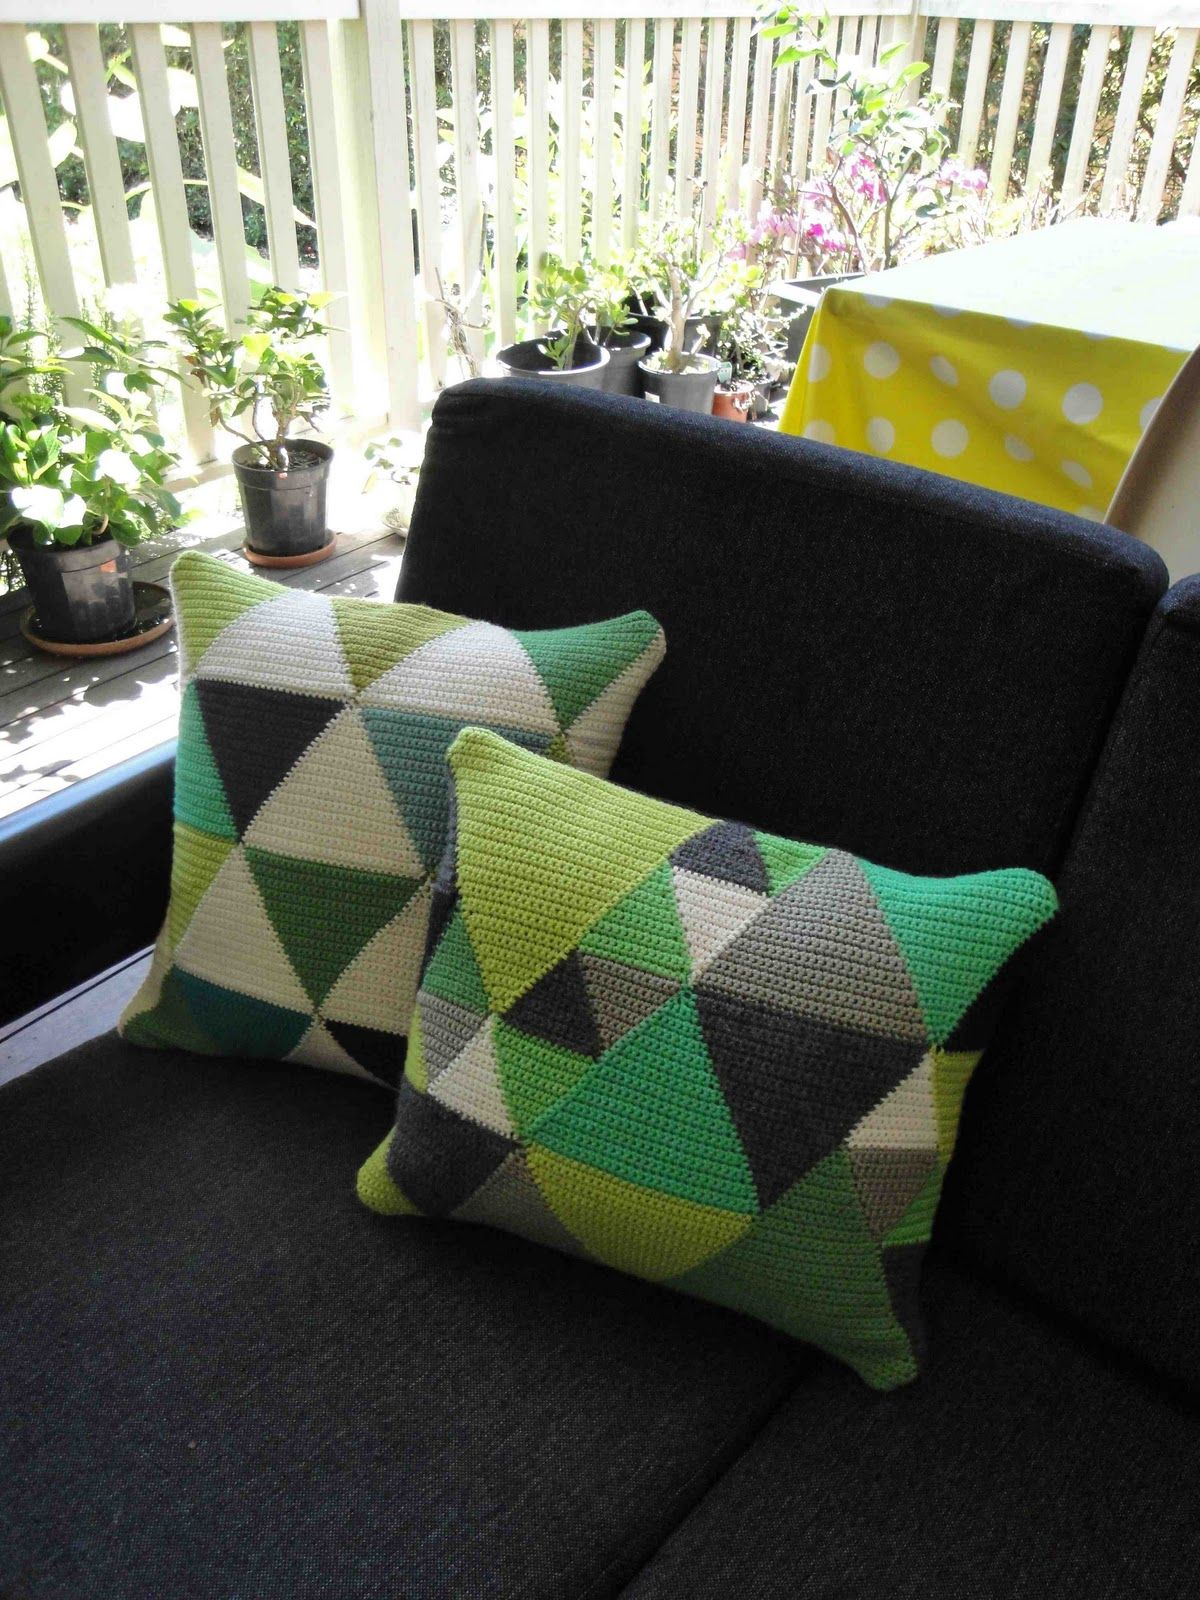 Iuve been making up some more crochet panels into cushions i think